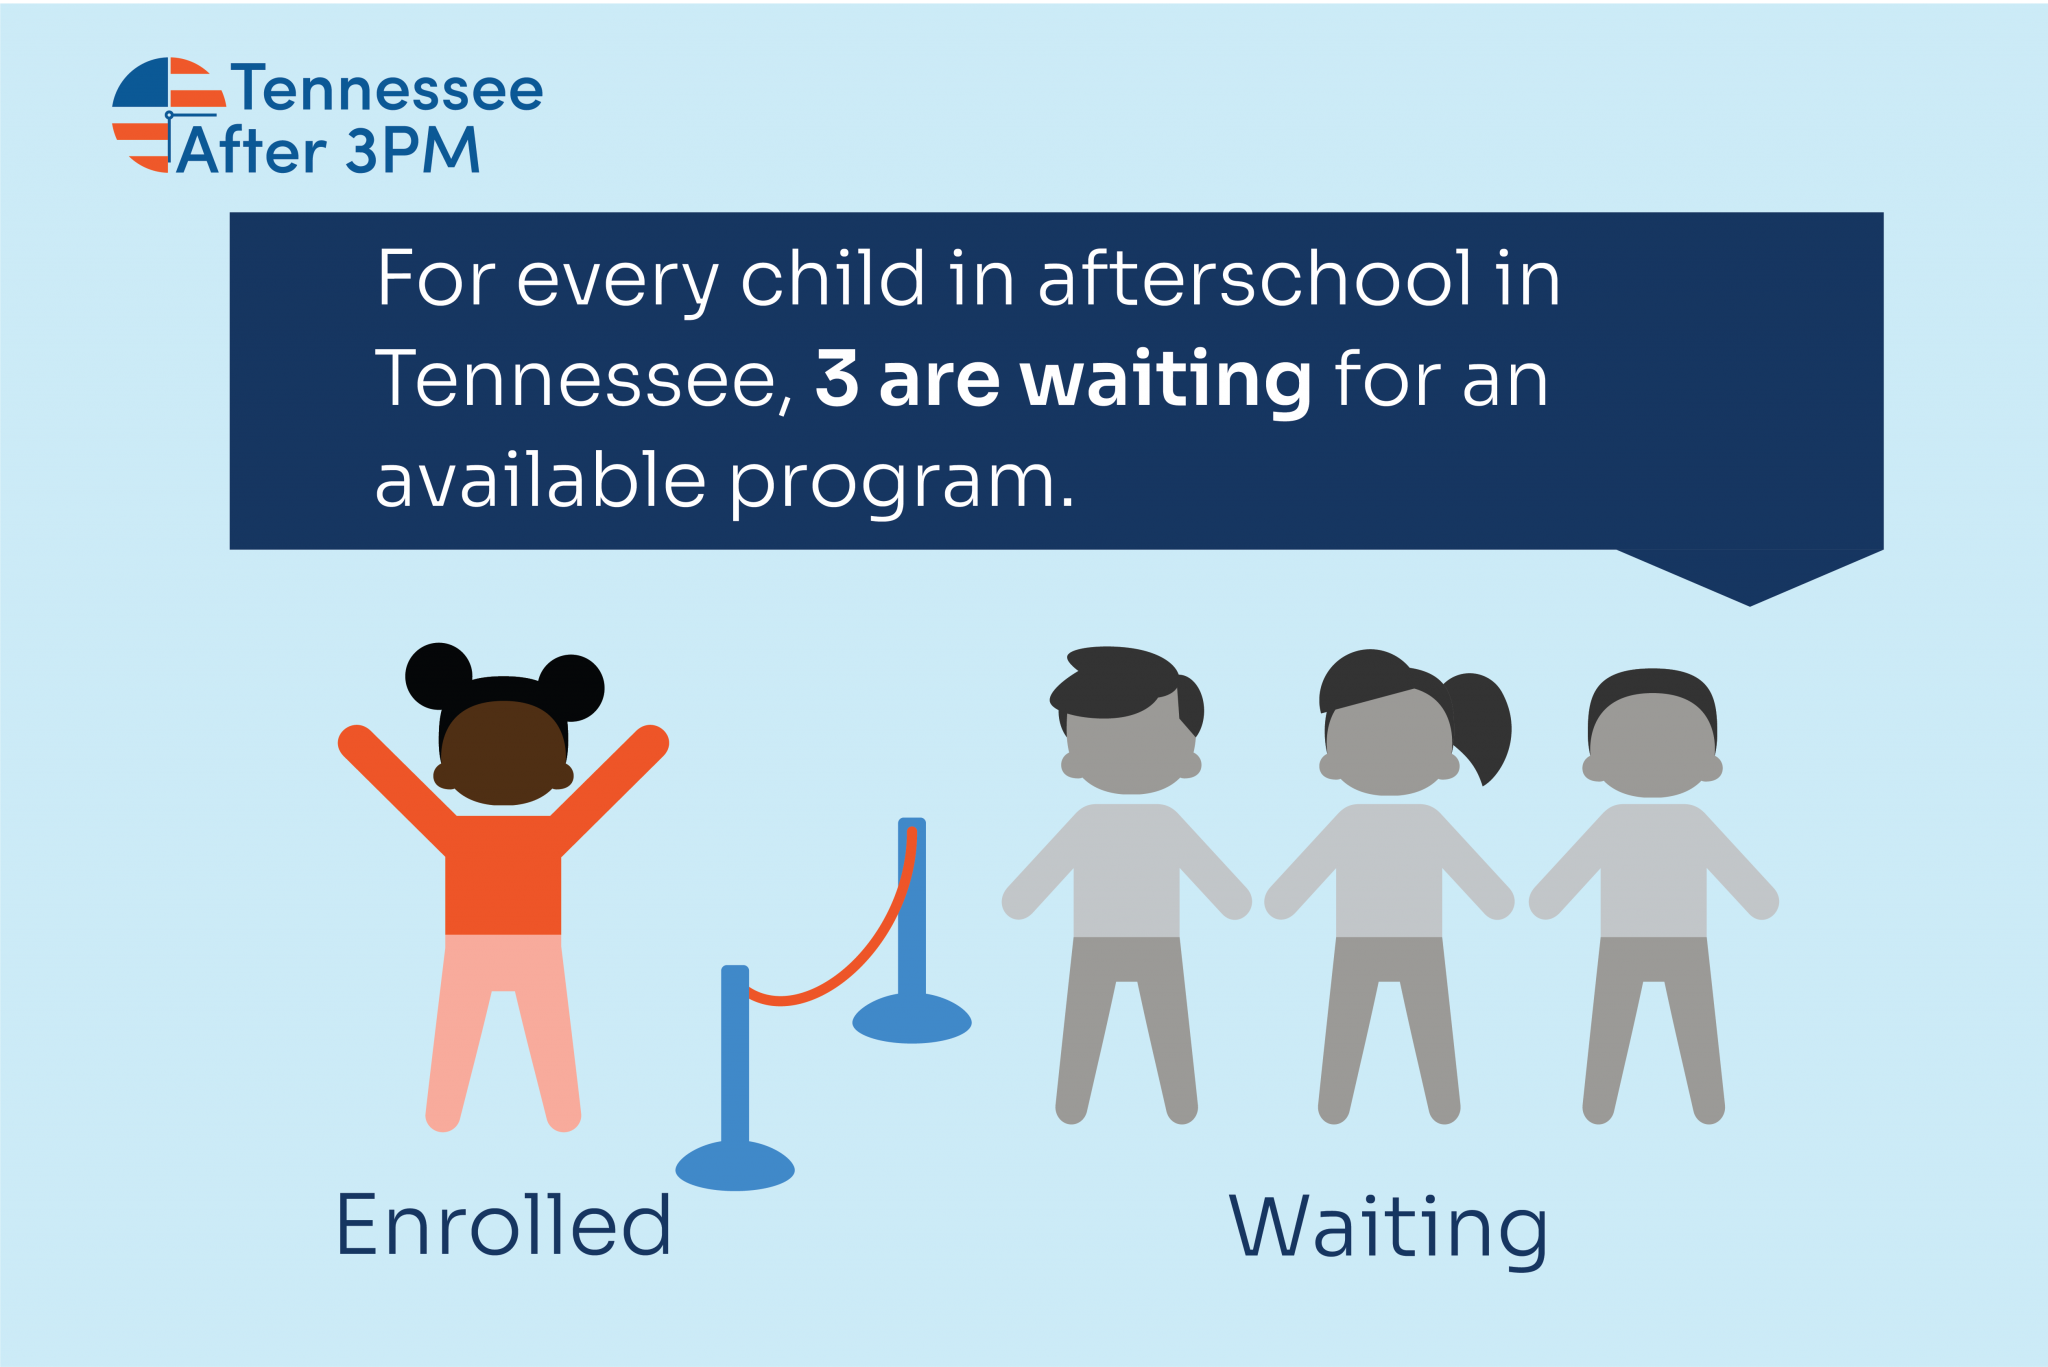 New Household Survey: Tennessee Is a 'Top 10 State for Afterschool,' Even as Unmet Demand for Programs Increases